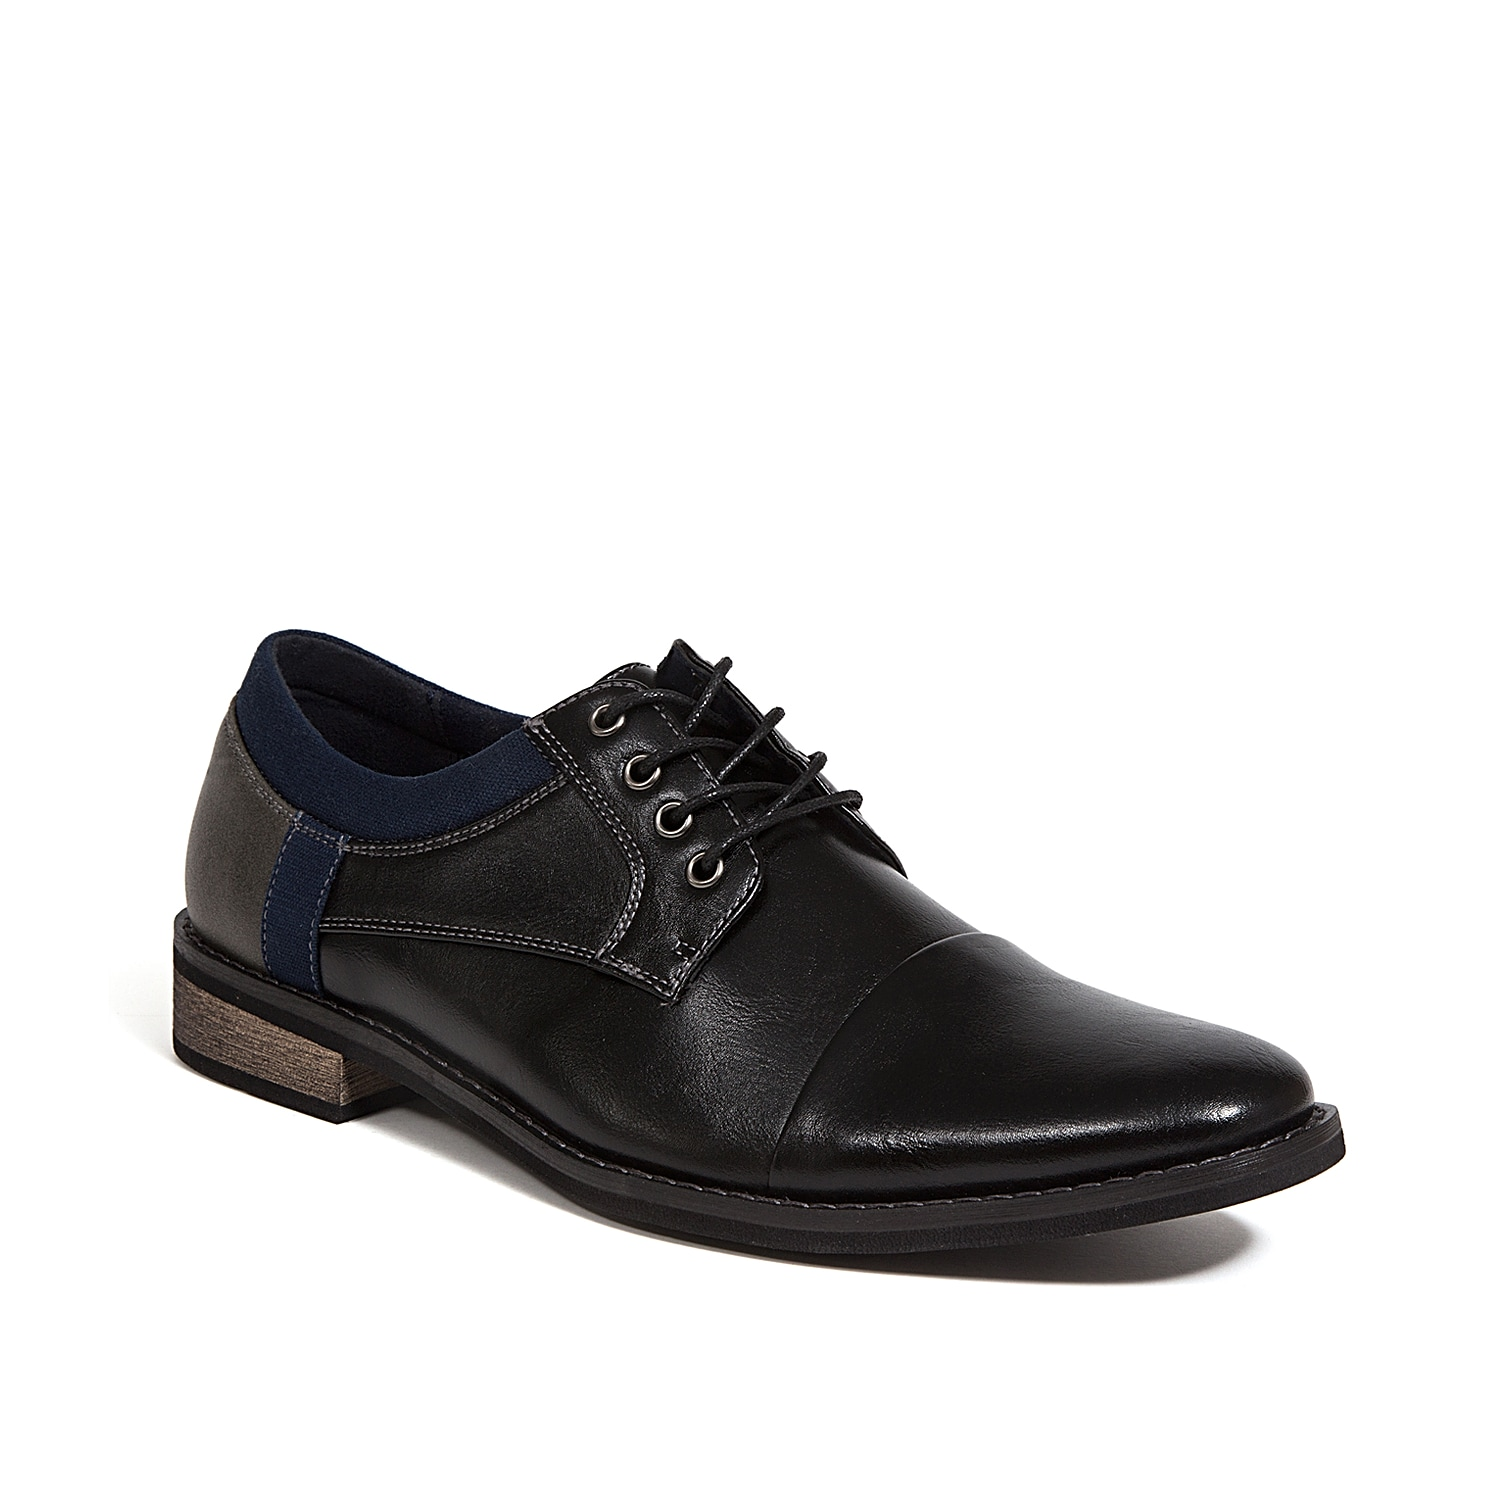 The Truckee cap toe oxford from Deer Stags rocks a classic design with modern updates. A memory foam footbed will keep you comfortable anywhere you go!